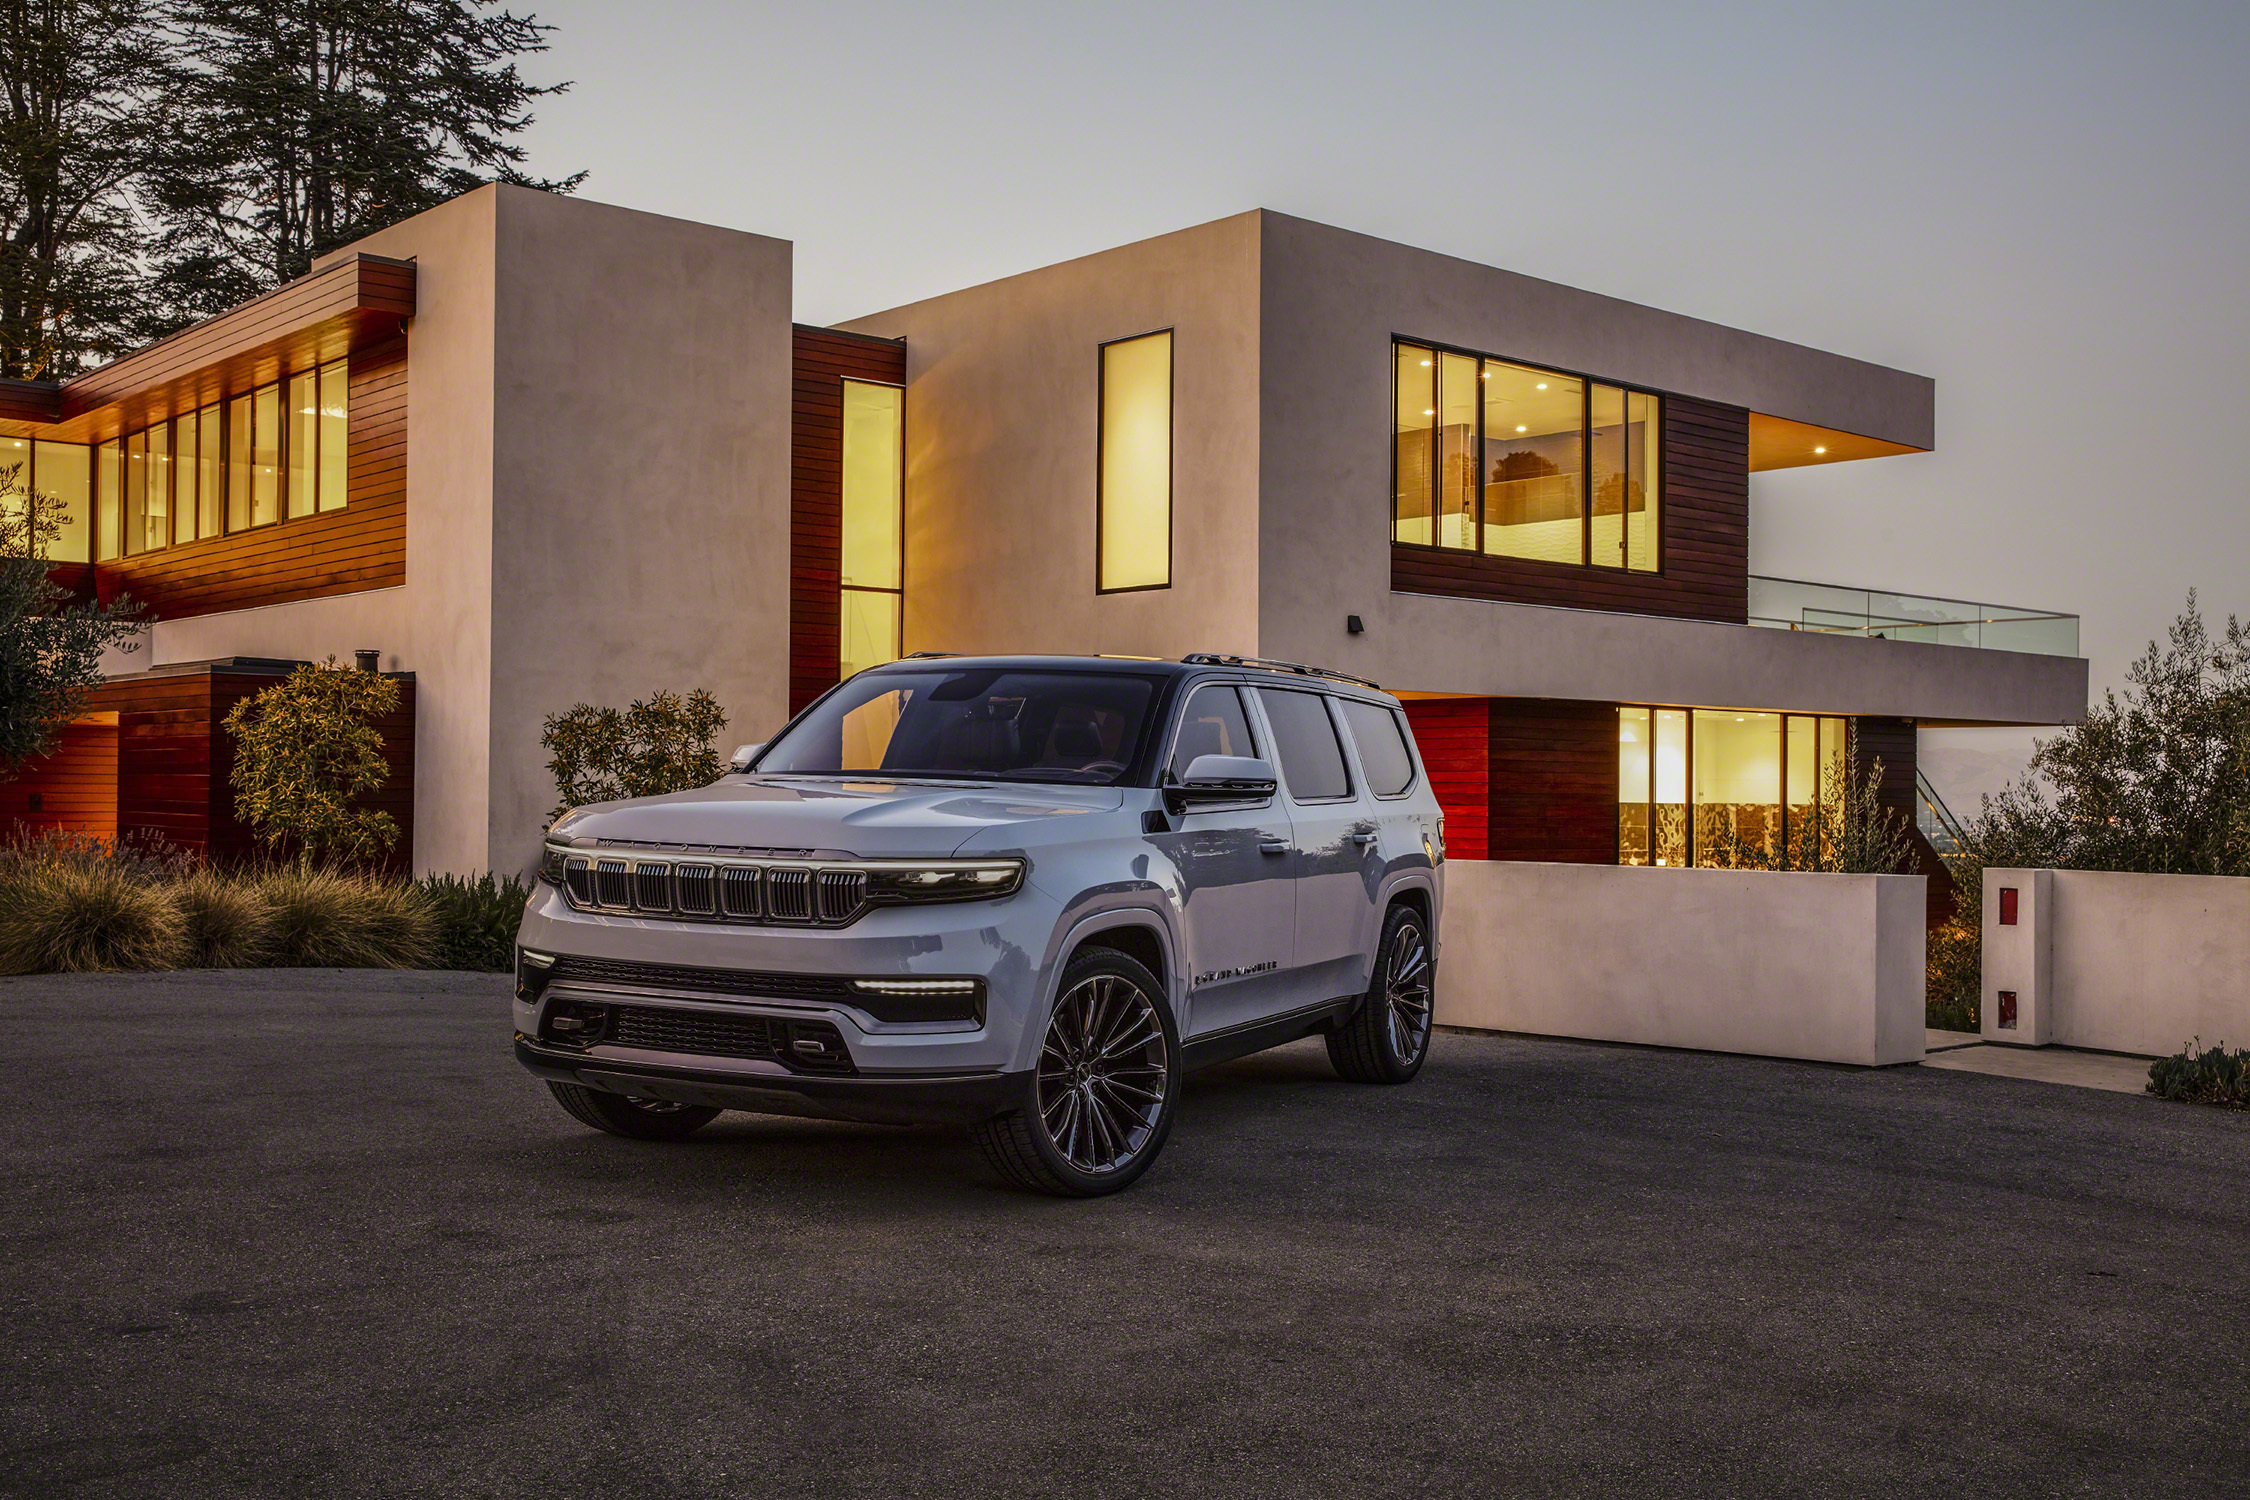 Grand Wagoneer Concept front three-quarter in front of desert house